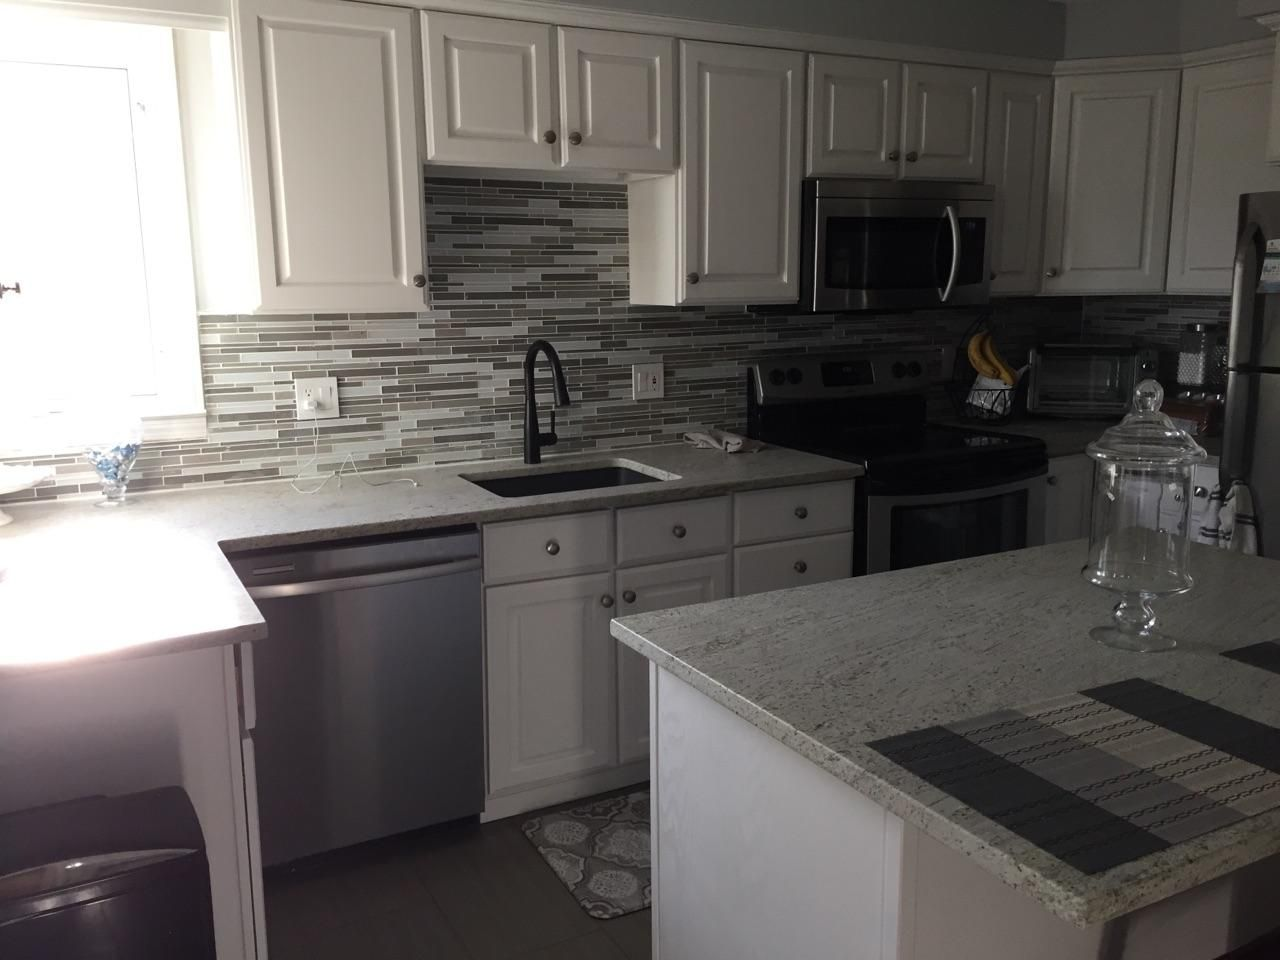 Sherwin Williams Snowbound Spray Painted Cabinets Granite River White Leather Finish From Ellemar Backsplash Painting Cabinets Spray Paint Cabinets Cabinet